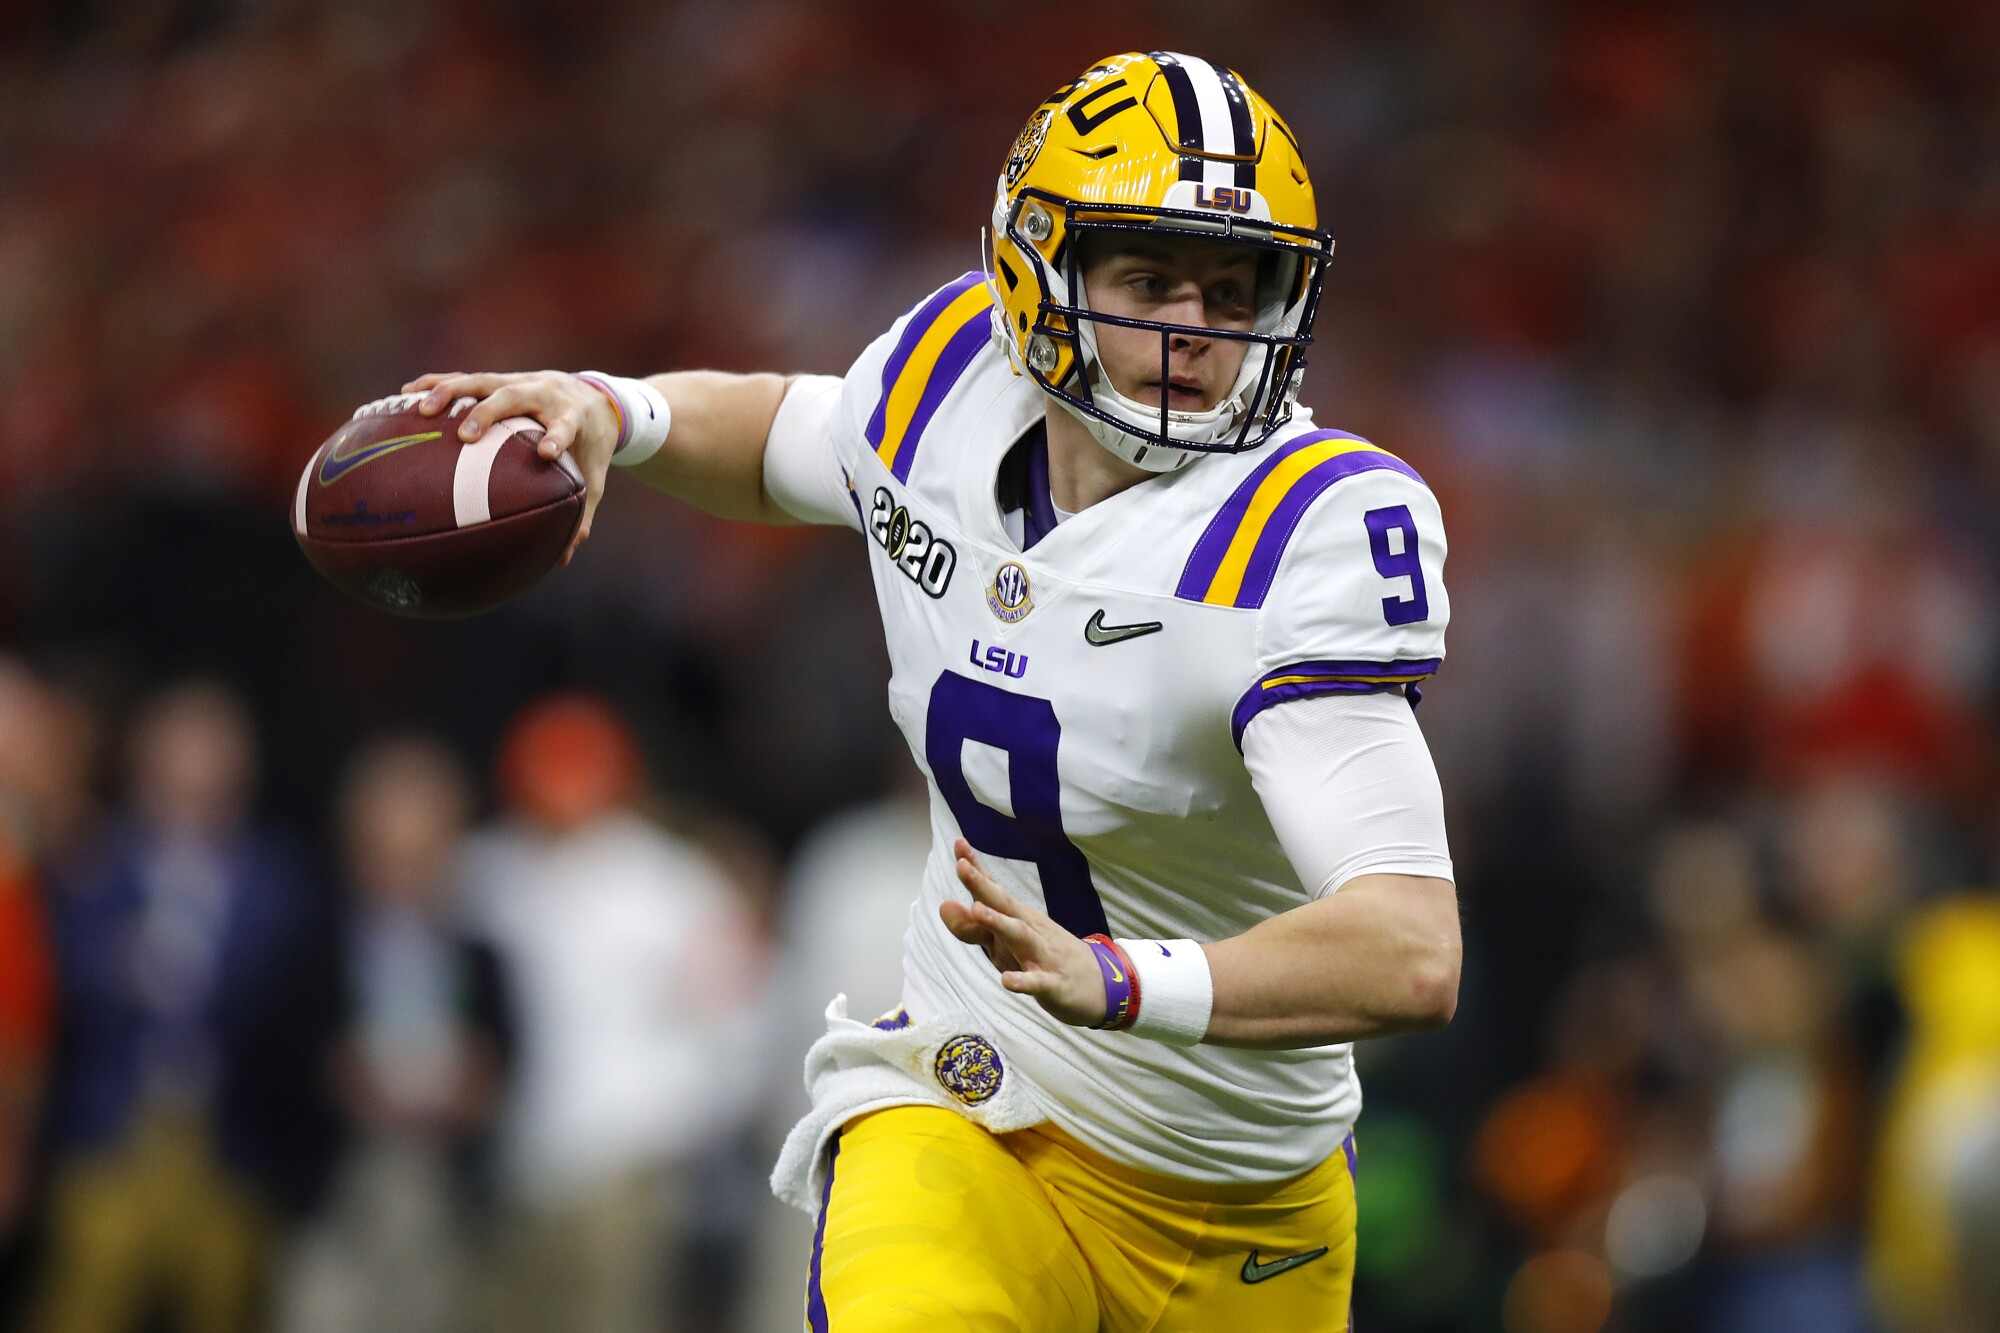 LSU quarterback Joe Burrow was selected No. 1 by the Cincinnati Bengals in the NFL draft on Thursday.